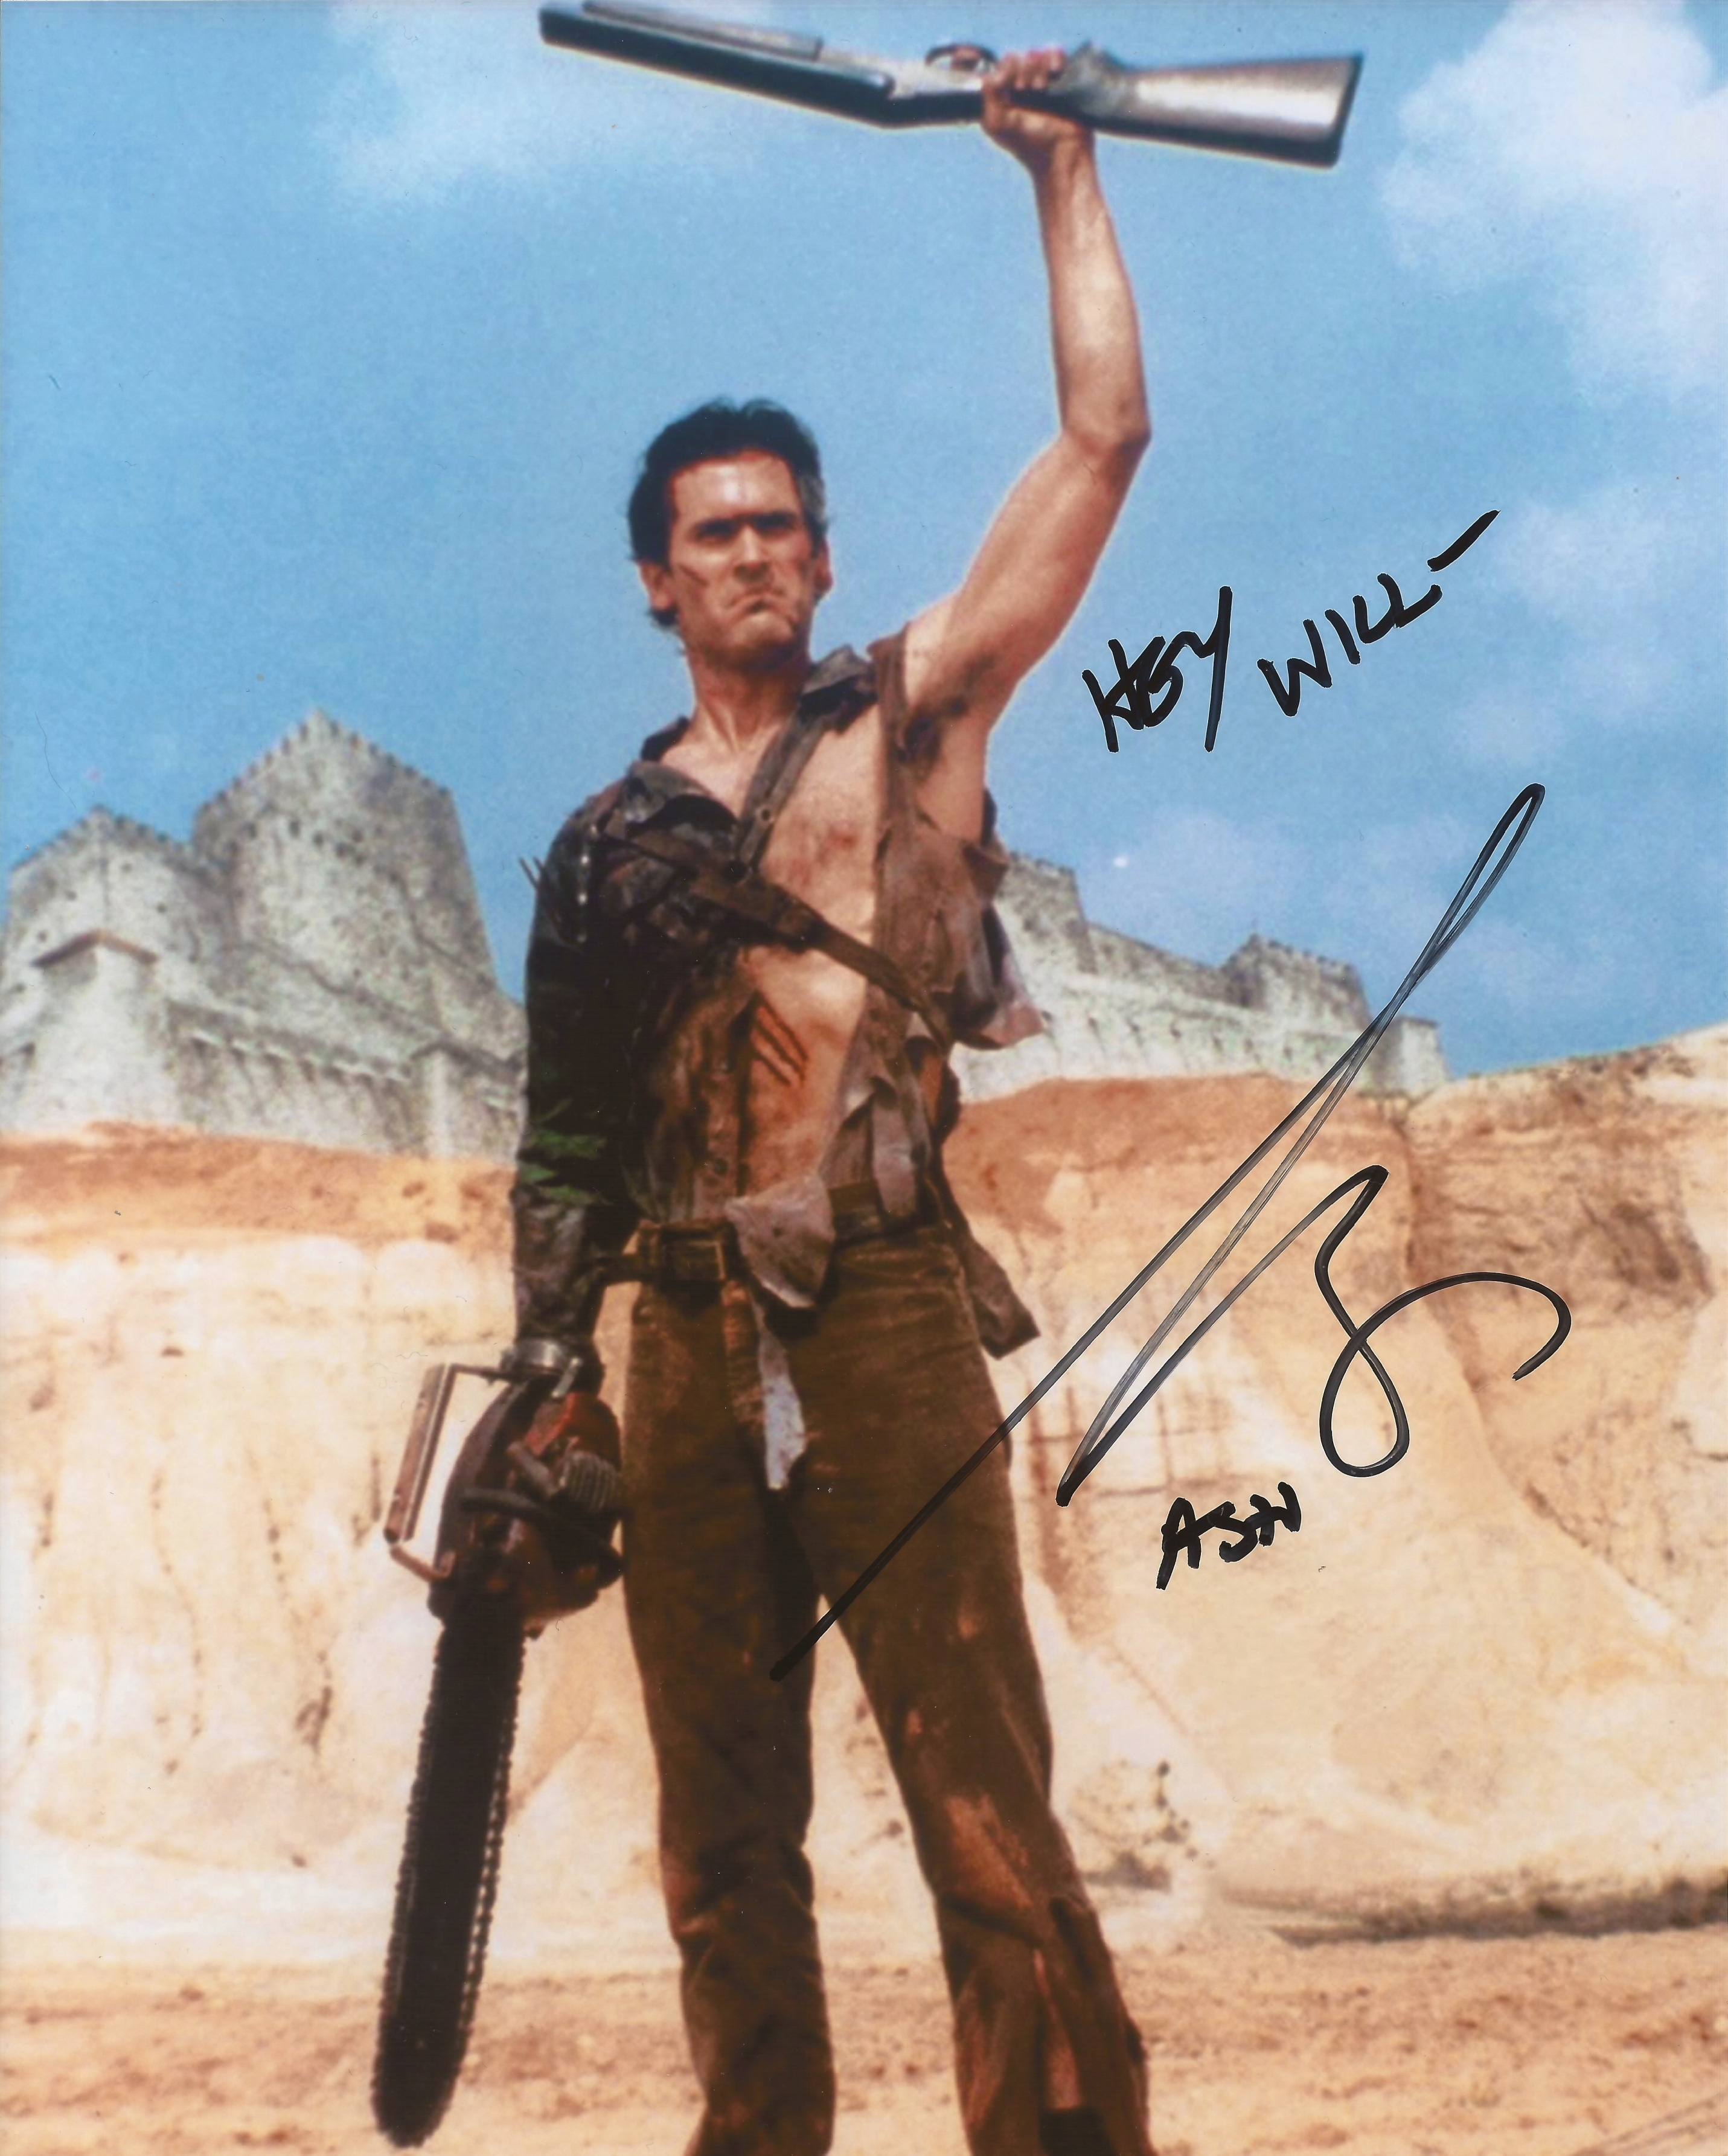 Bruce Campbell's autograph